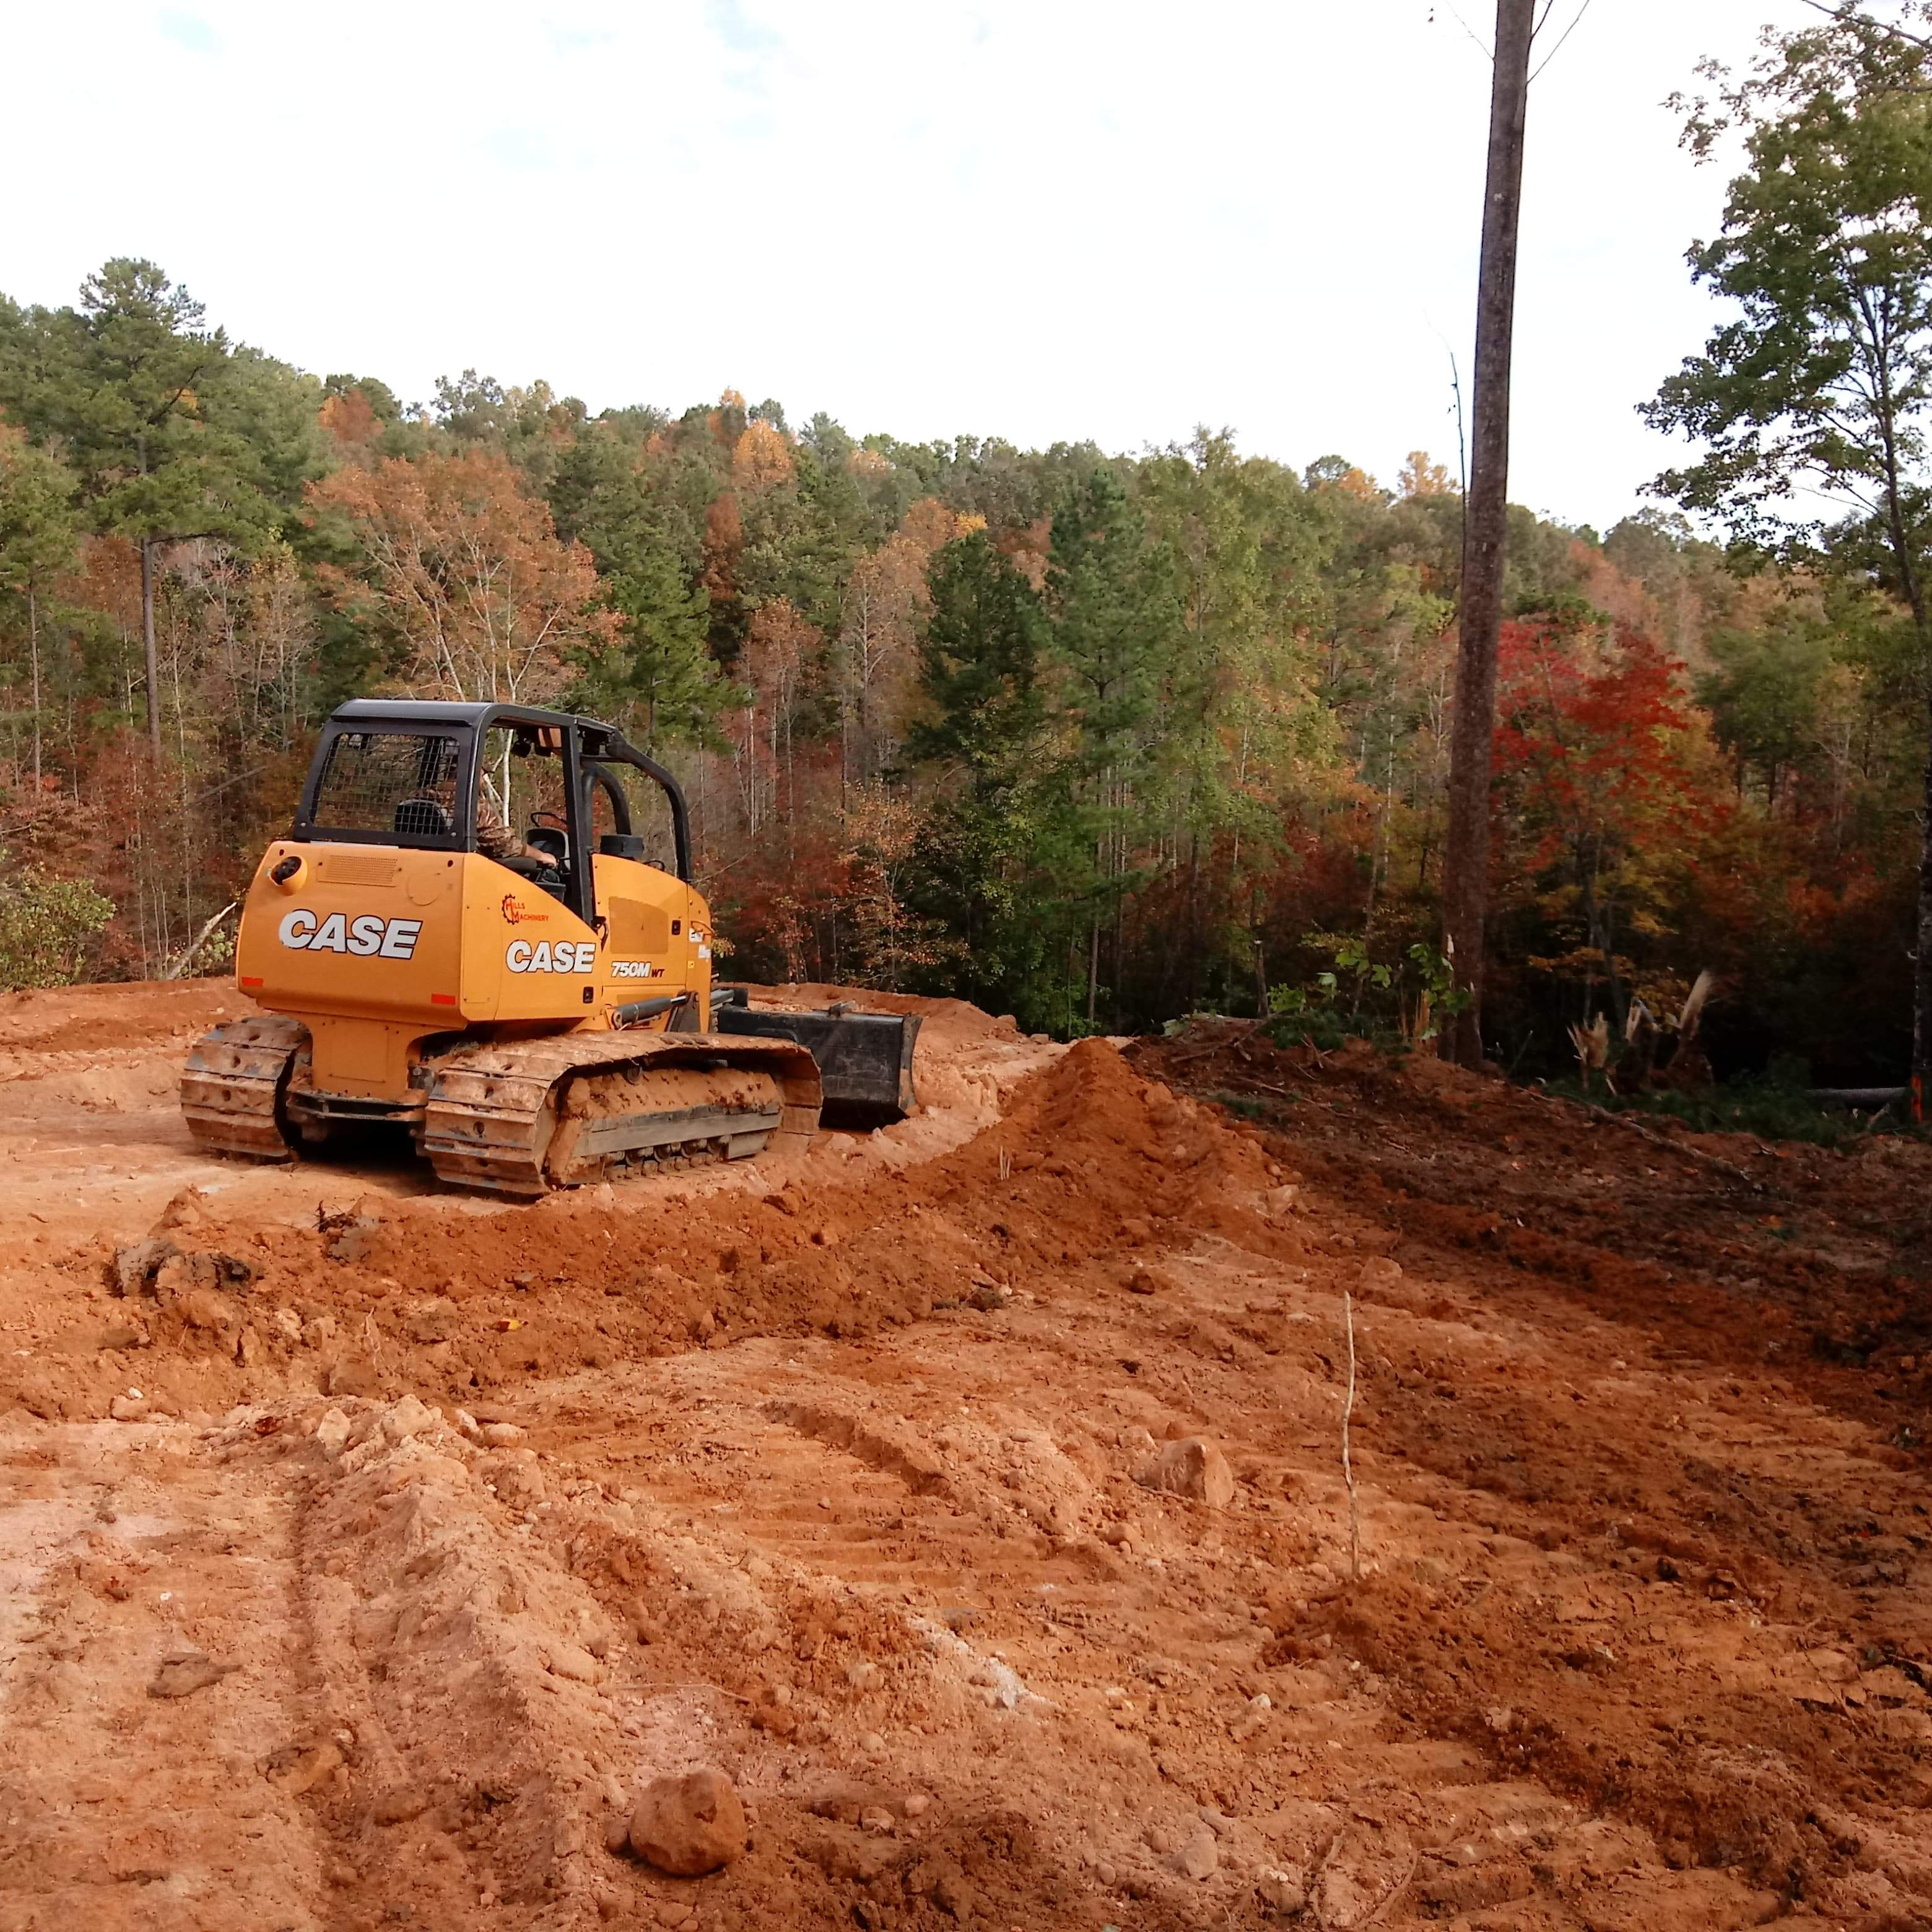 Clearing and Grading with Equipment near woods